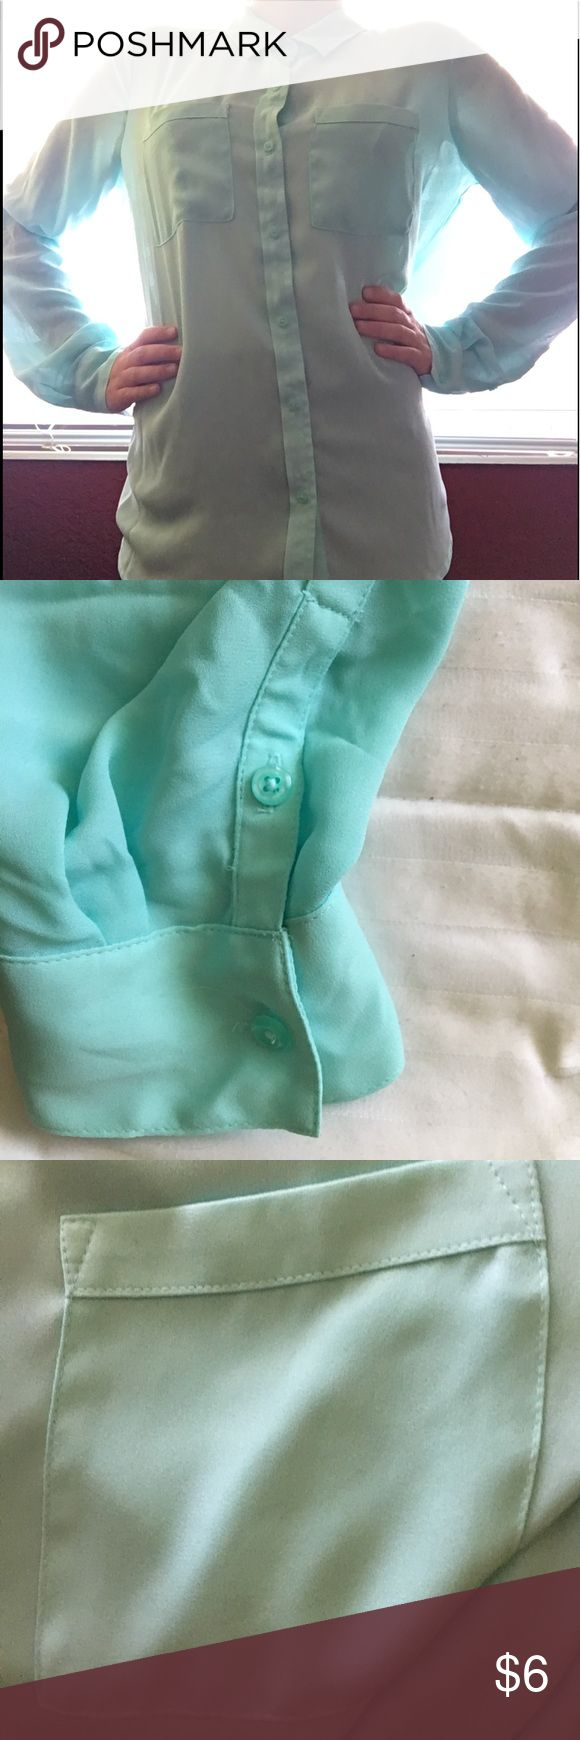 LIGHT MINT GREEN BUTTON DOWN LONG SLEEVE SHIRT Lovely sheer mint green button down long sleeve blouse. Super cute, light, and comfortable. It has a nice collar. The material is very thin and pretty see through. All of the buttons are intact and the two breast pockets are real pockets. The shirt is in great condition- like new. I only wore it once because it was too big for me. Great with black leggings. Apt. 9 Tops Button Down Shirts